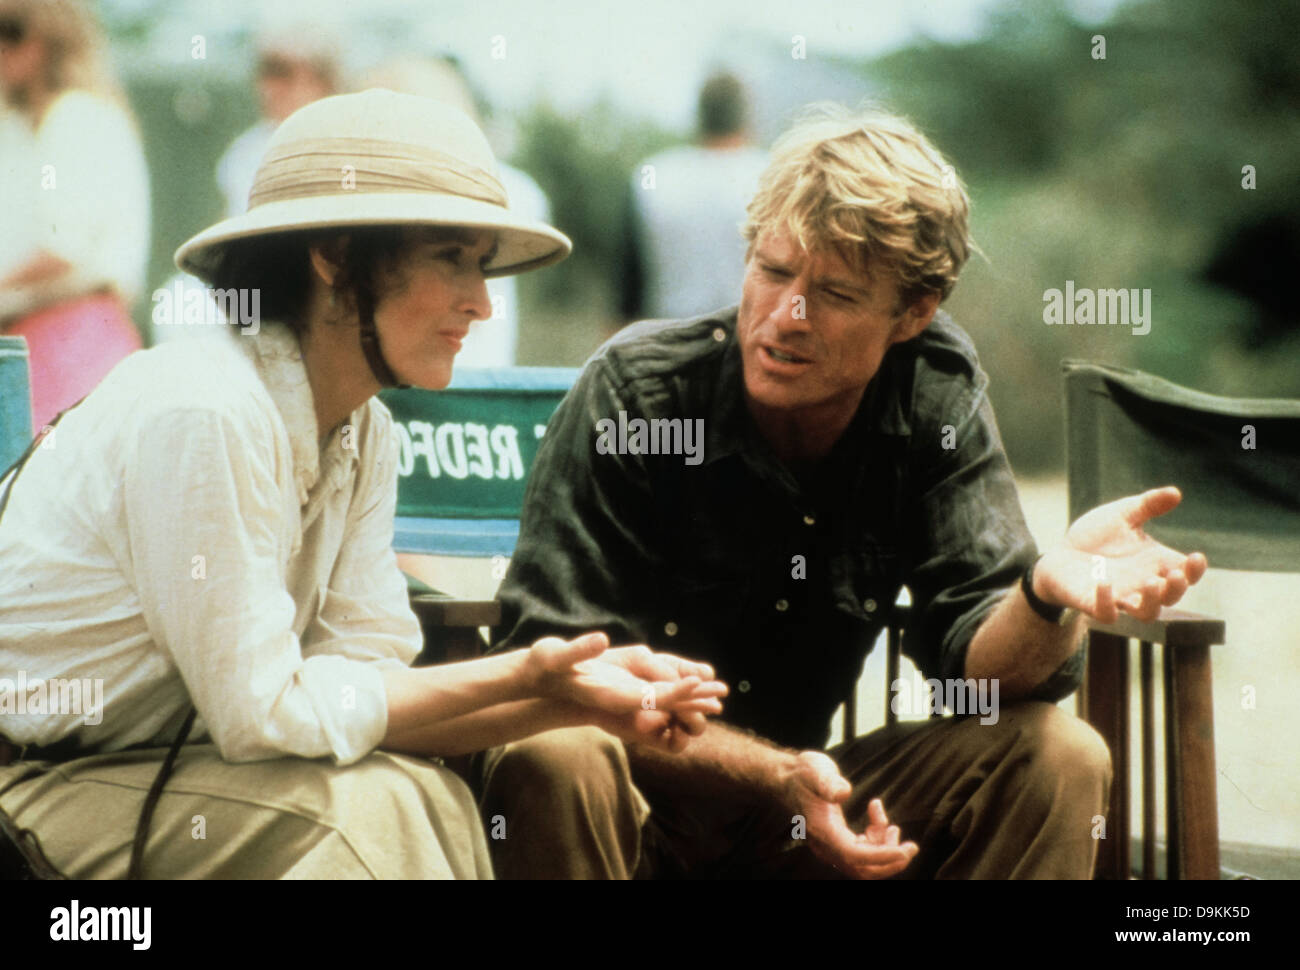 Robert Redford y Meryl Streep out of Africa 1985 Imagen De Stock